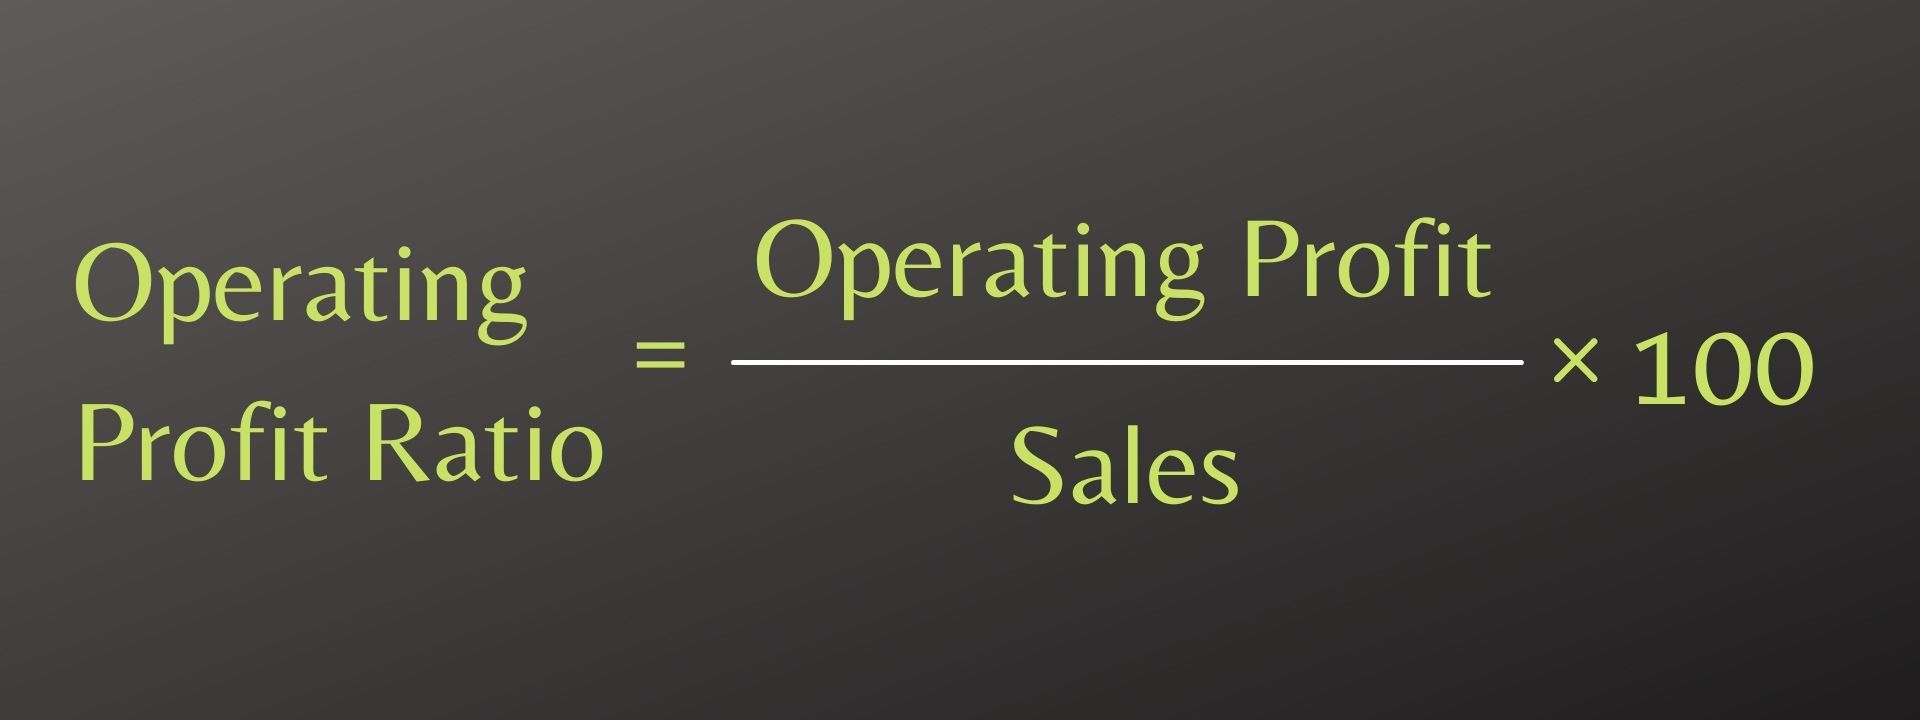 Operating Profit Ratio